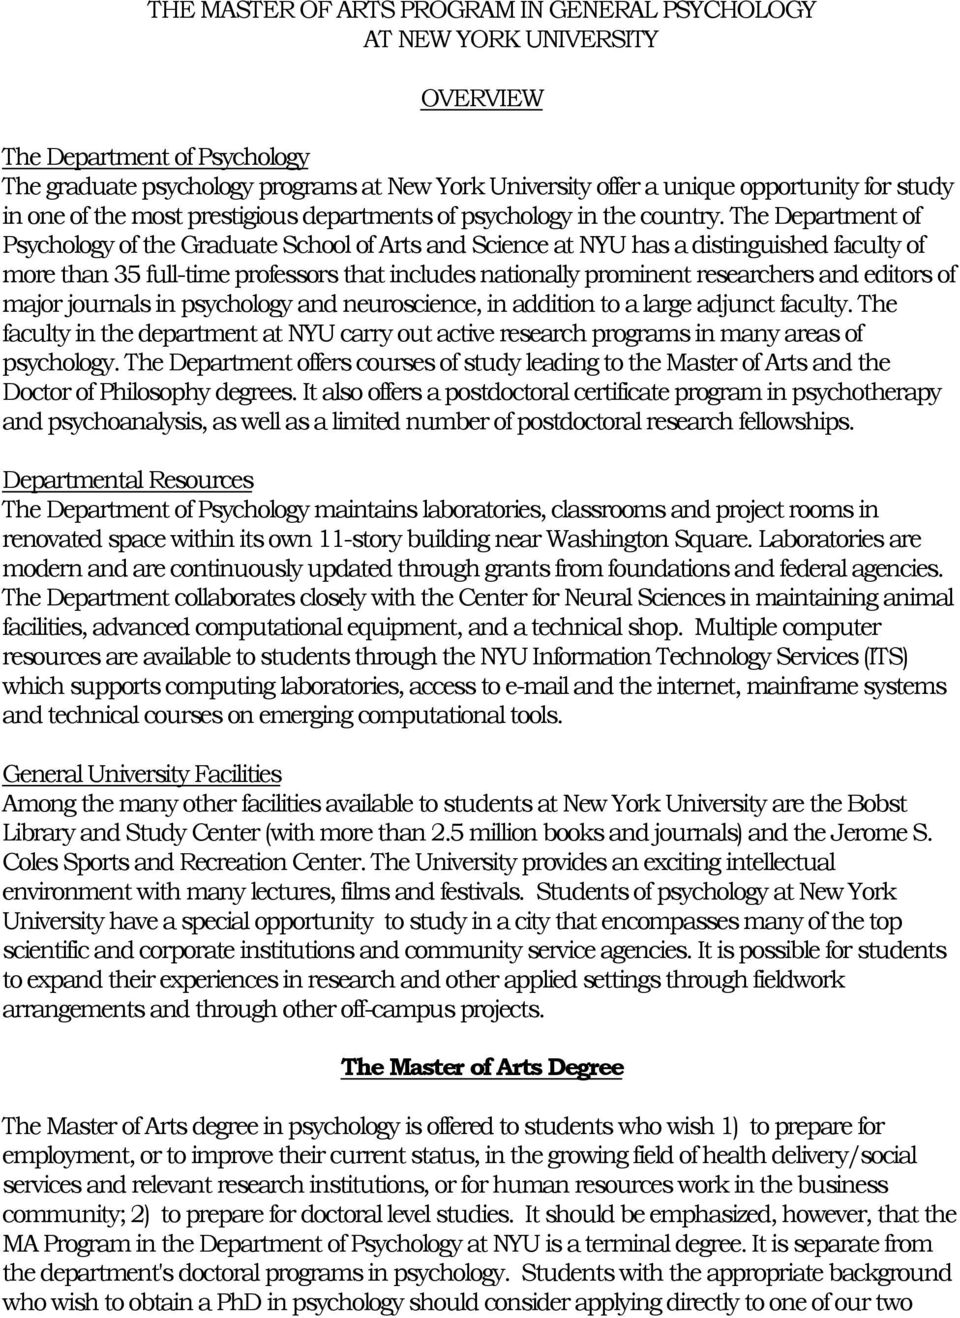 The Department of Psychology of the Graduate School of Arts and Science at NYU has a distinguished faculty of more than 35 full-time professors that includes nationally prominent researchers and